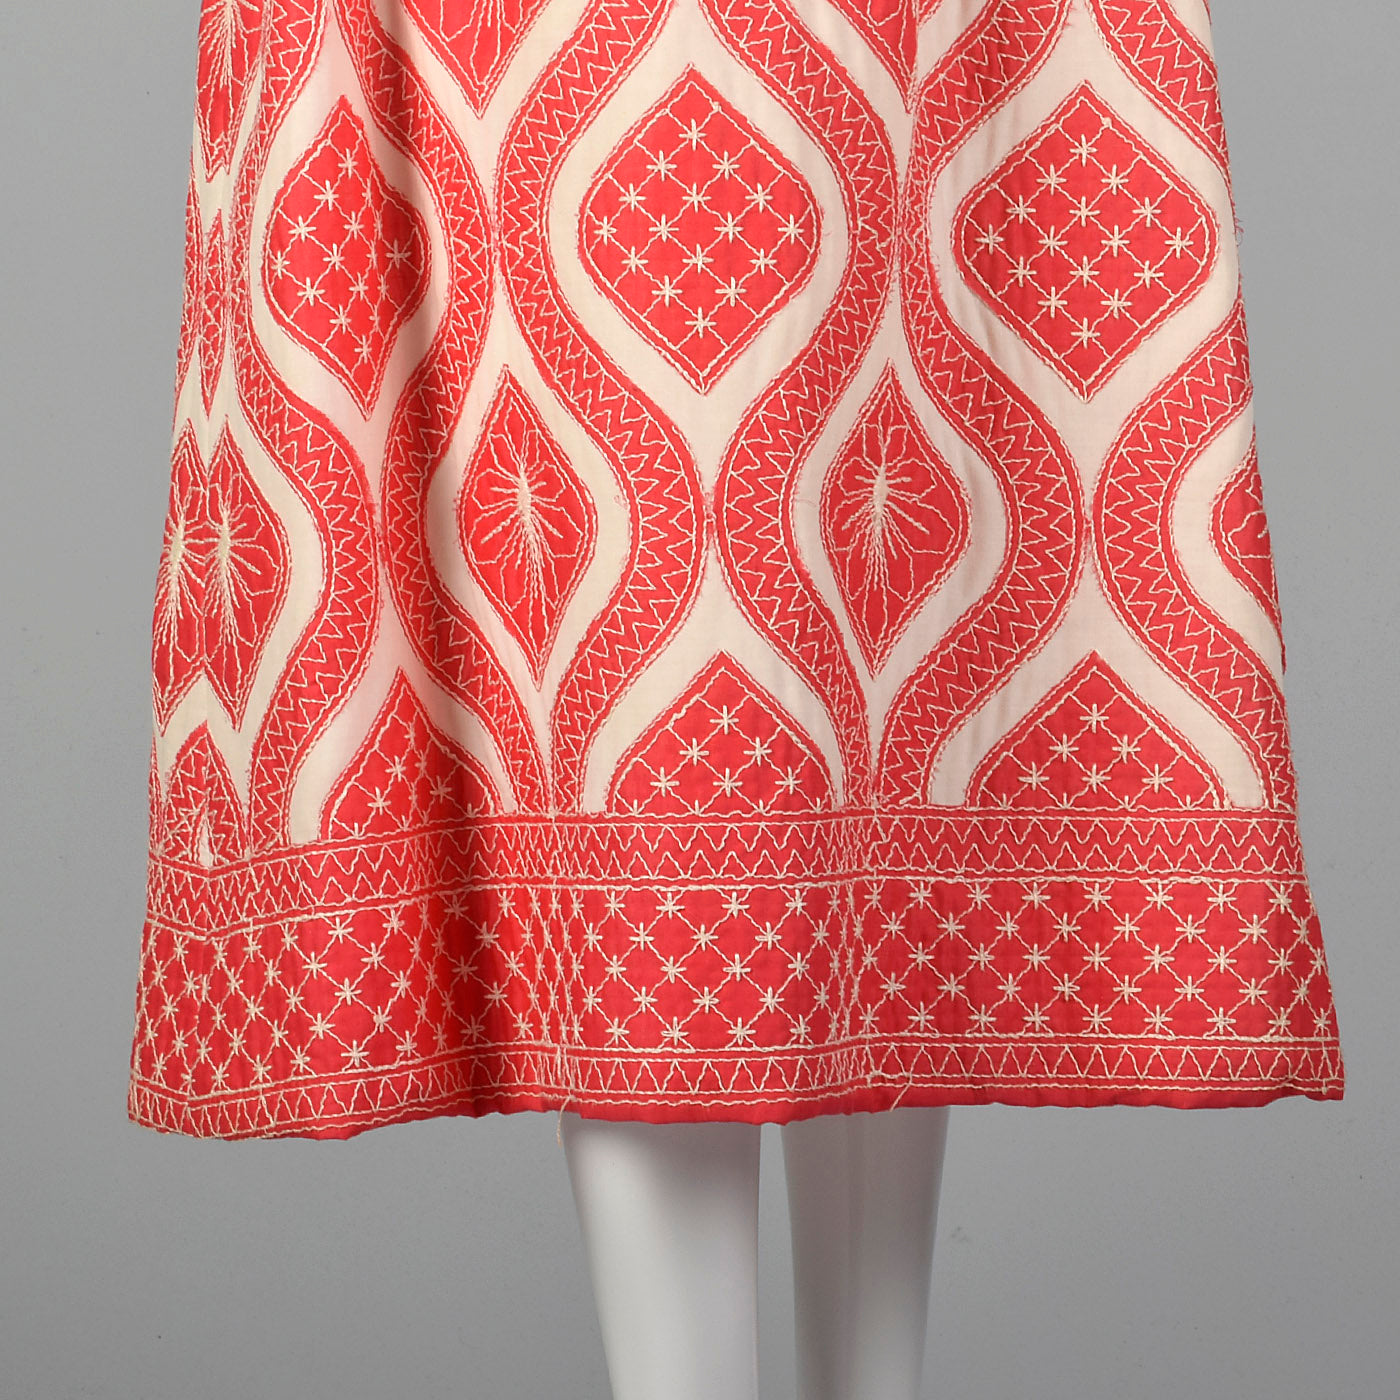 1970s Quilted Maxi Dress in Coral